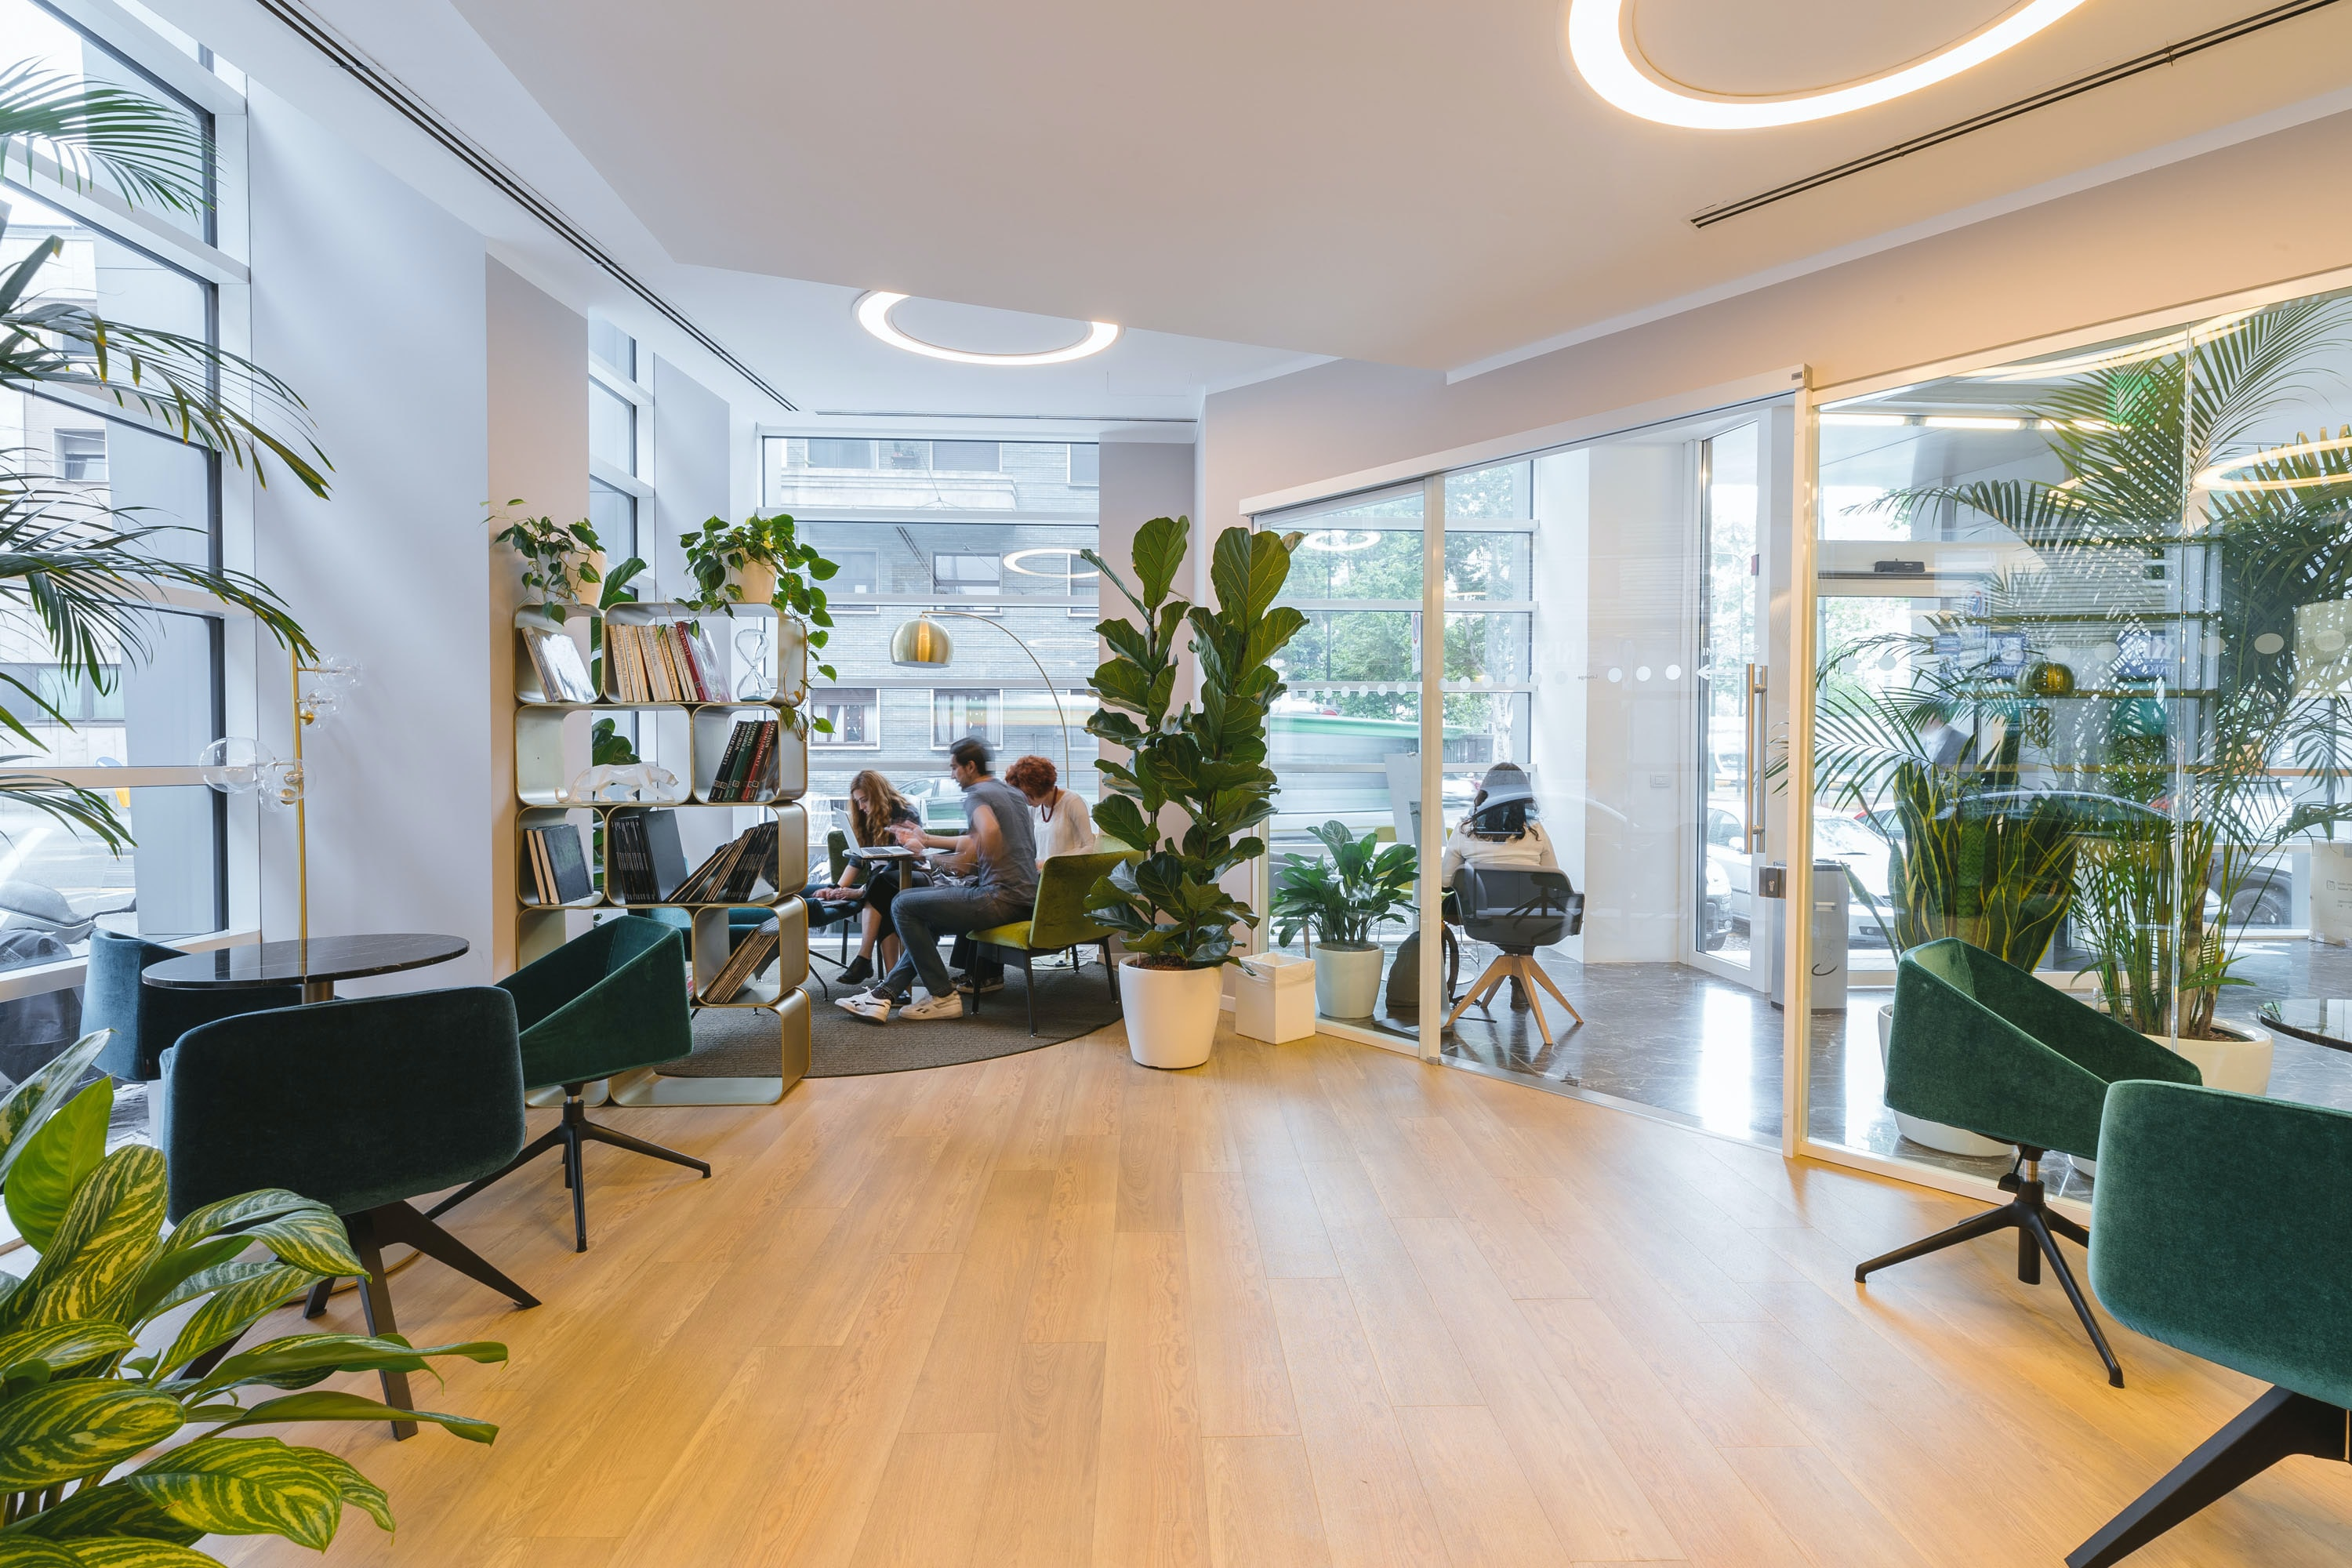 An office layout that promotes collaboration whilst maintaining social distancing